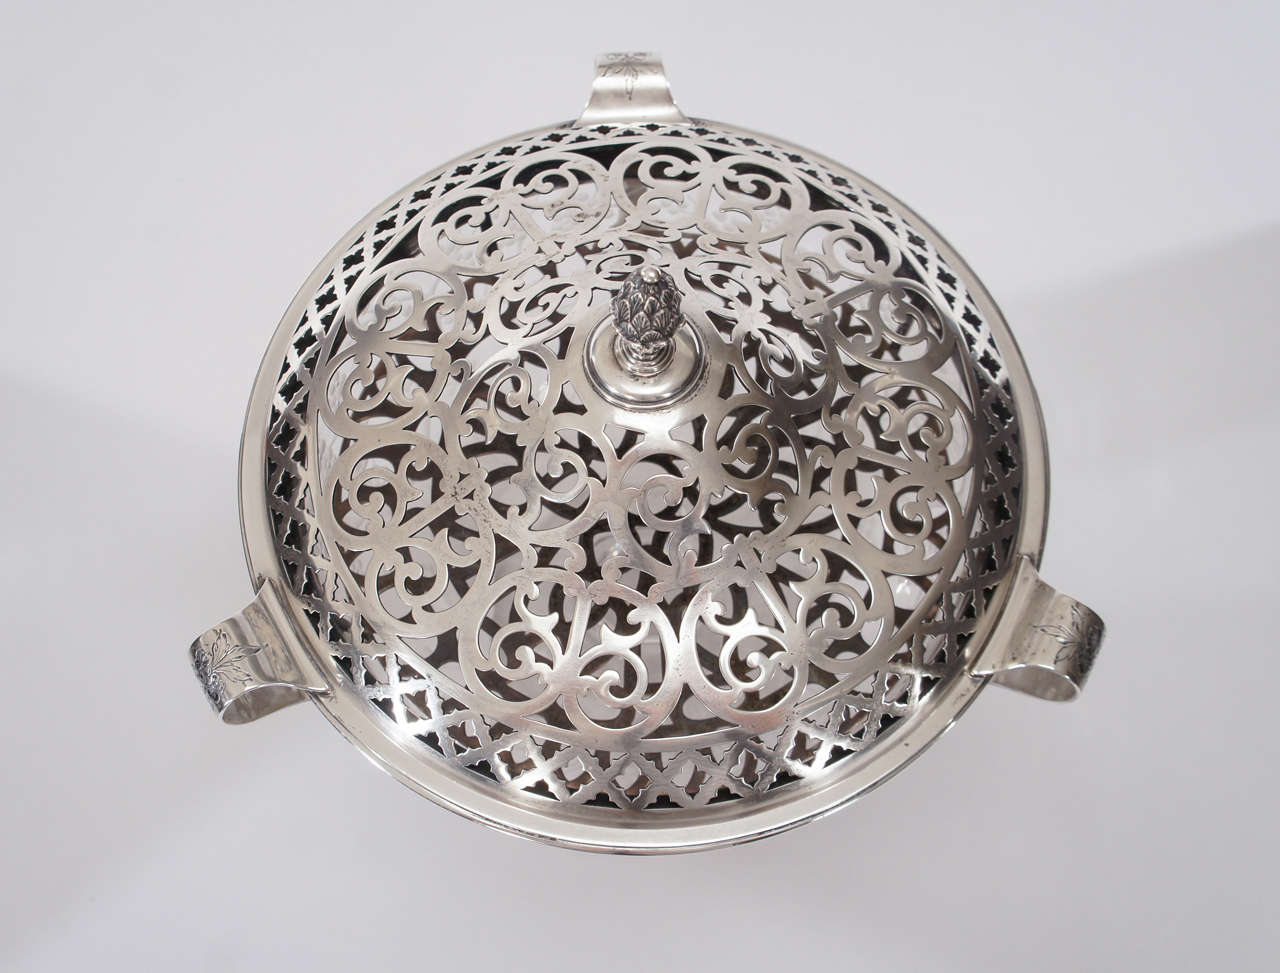 Aesthetic Movement Hawkes Centerpiece with Gorham Sterling Silver Mount and Flower Frog-Grogan Co. For Sale